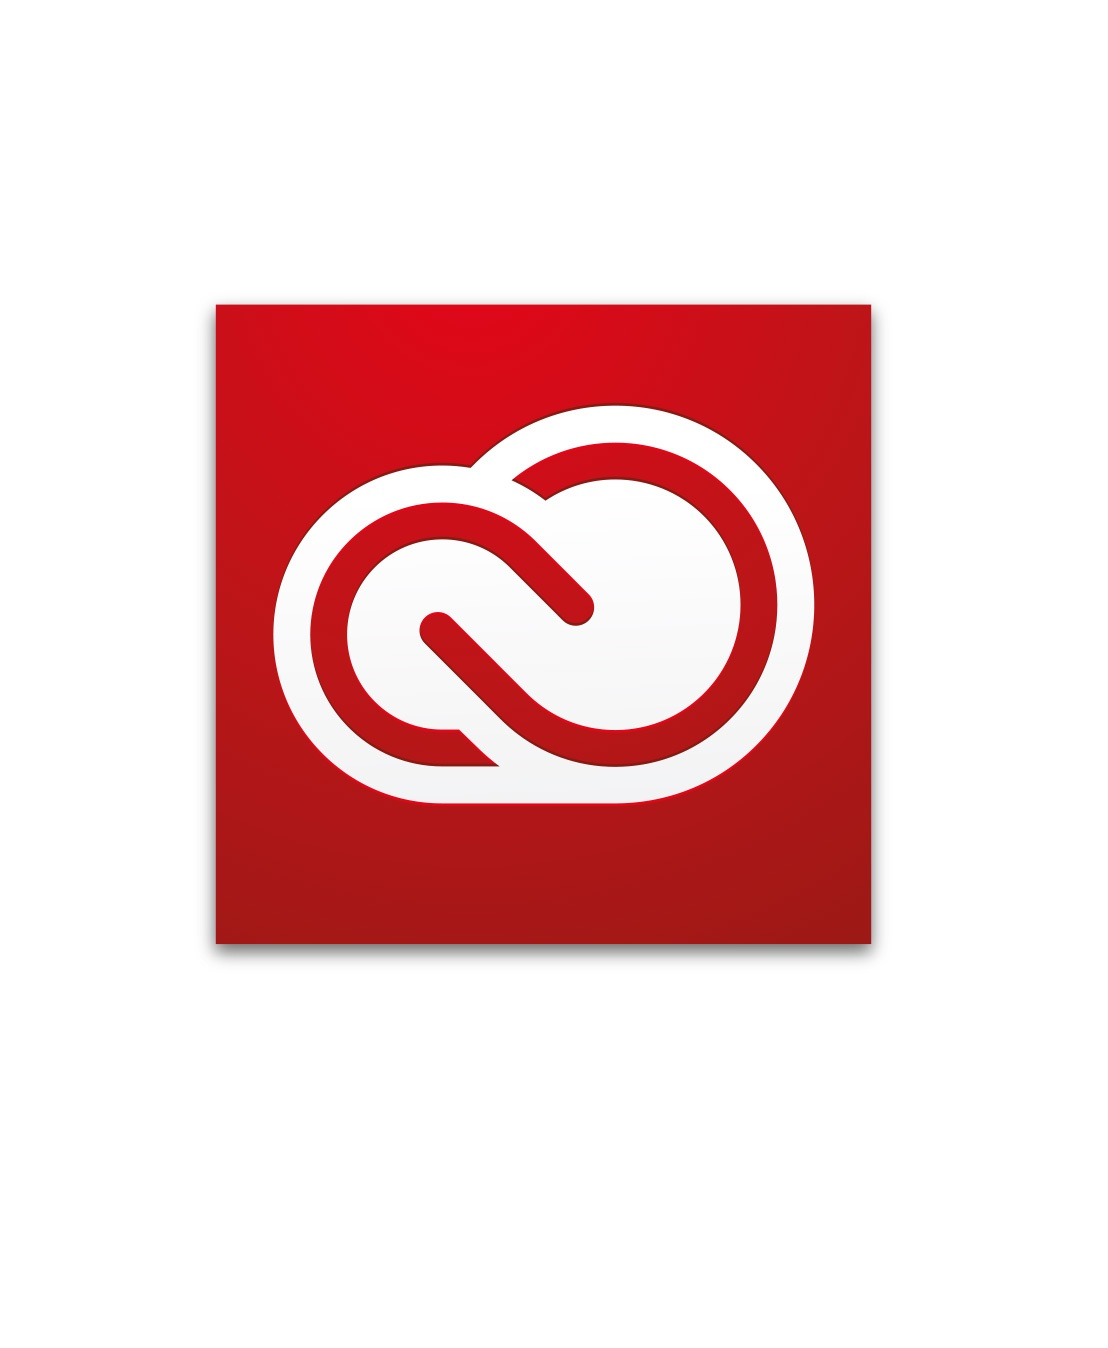 Adobe Creative Cloud for Teams All Apps VIP Lizenz 1 Jahr Subscription Download Education Win/Mac, Englisch (50-99 Lizenzen) (65272477BB03A12)